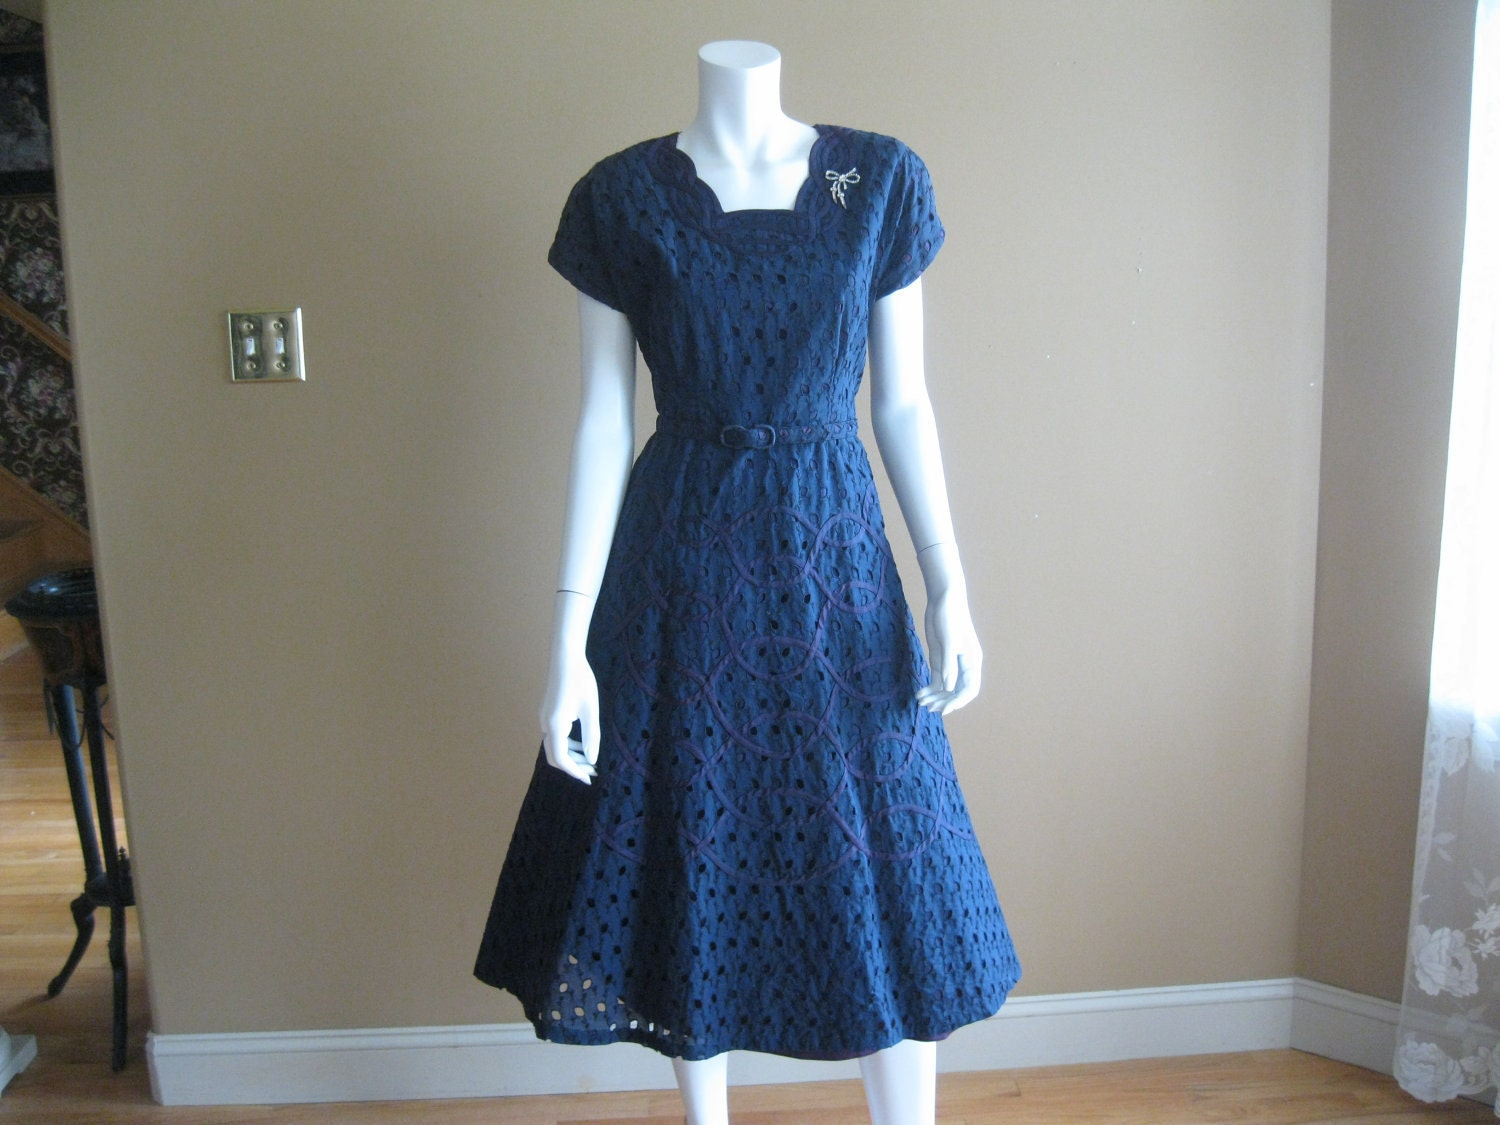 Beautiful Evening dress blogs: Navy blue eyelet dress